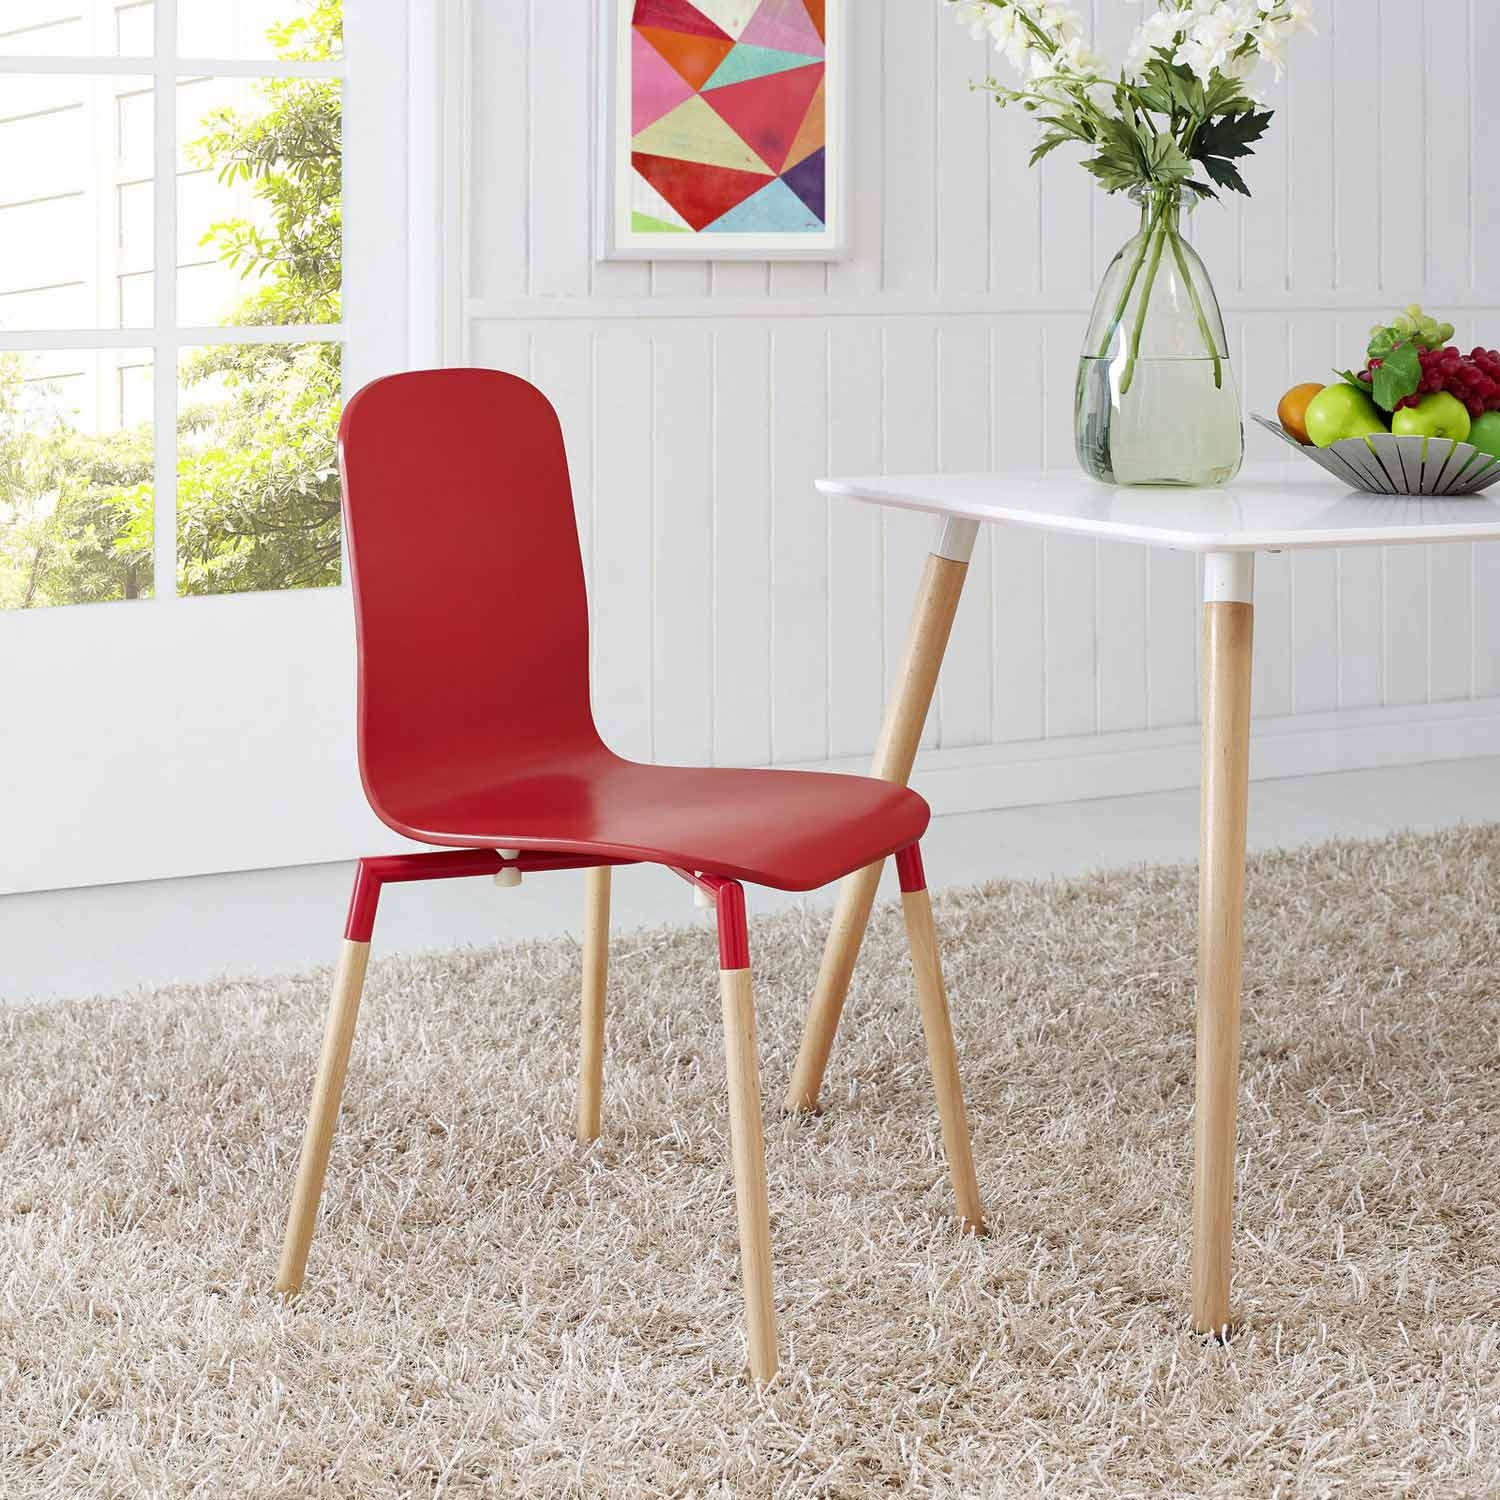 Fancy dining chairs environmental